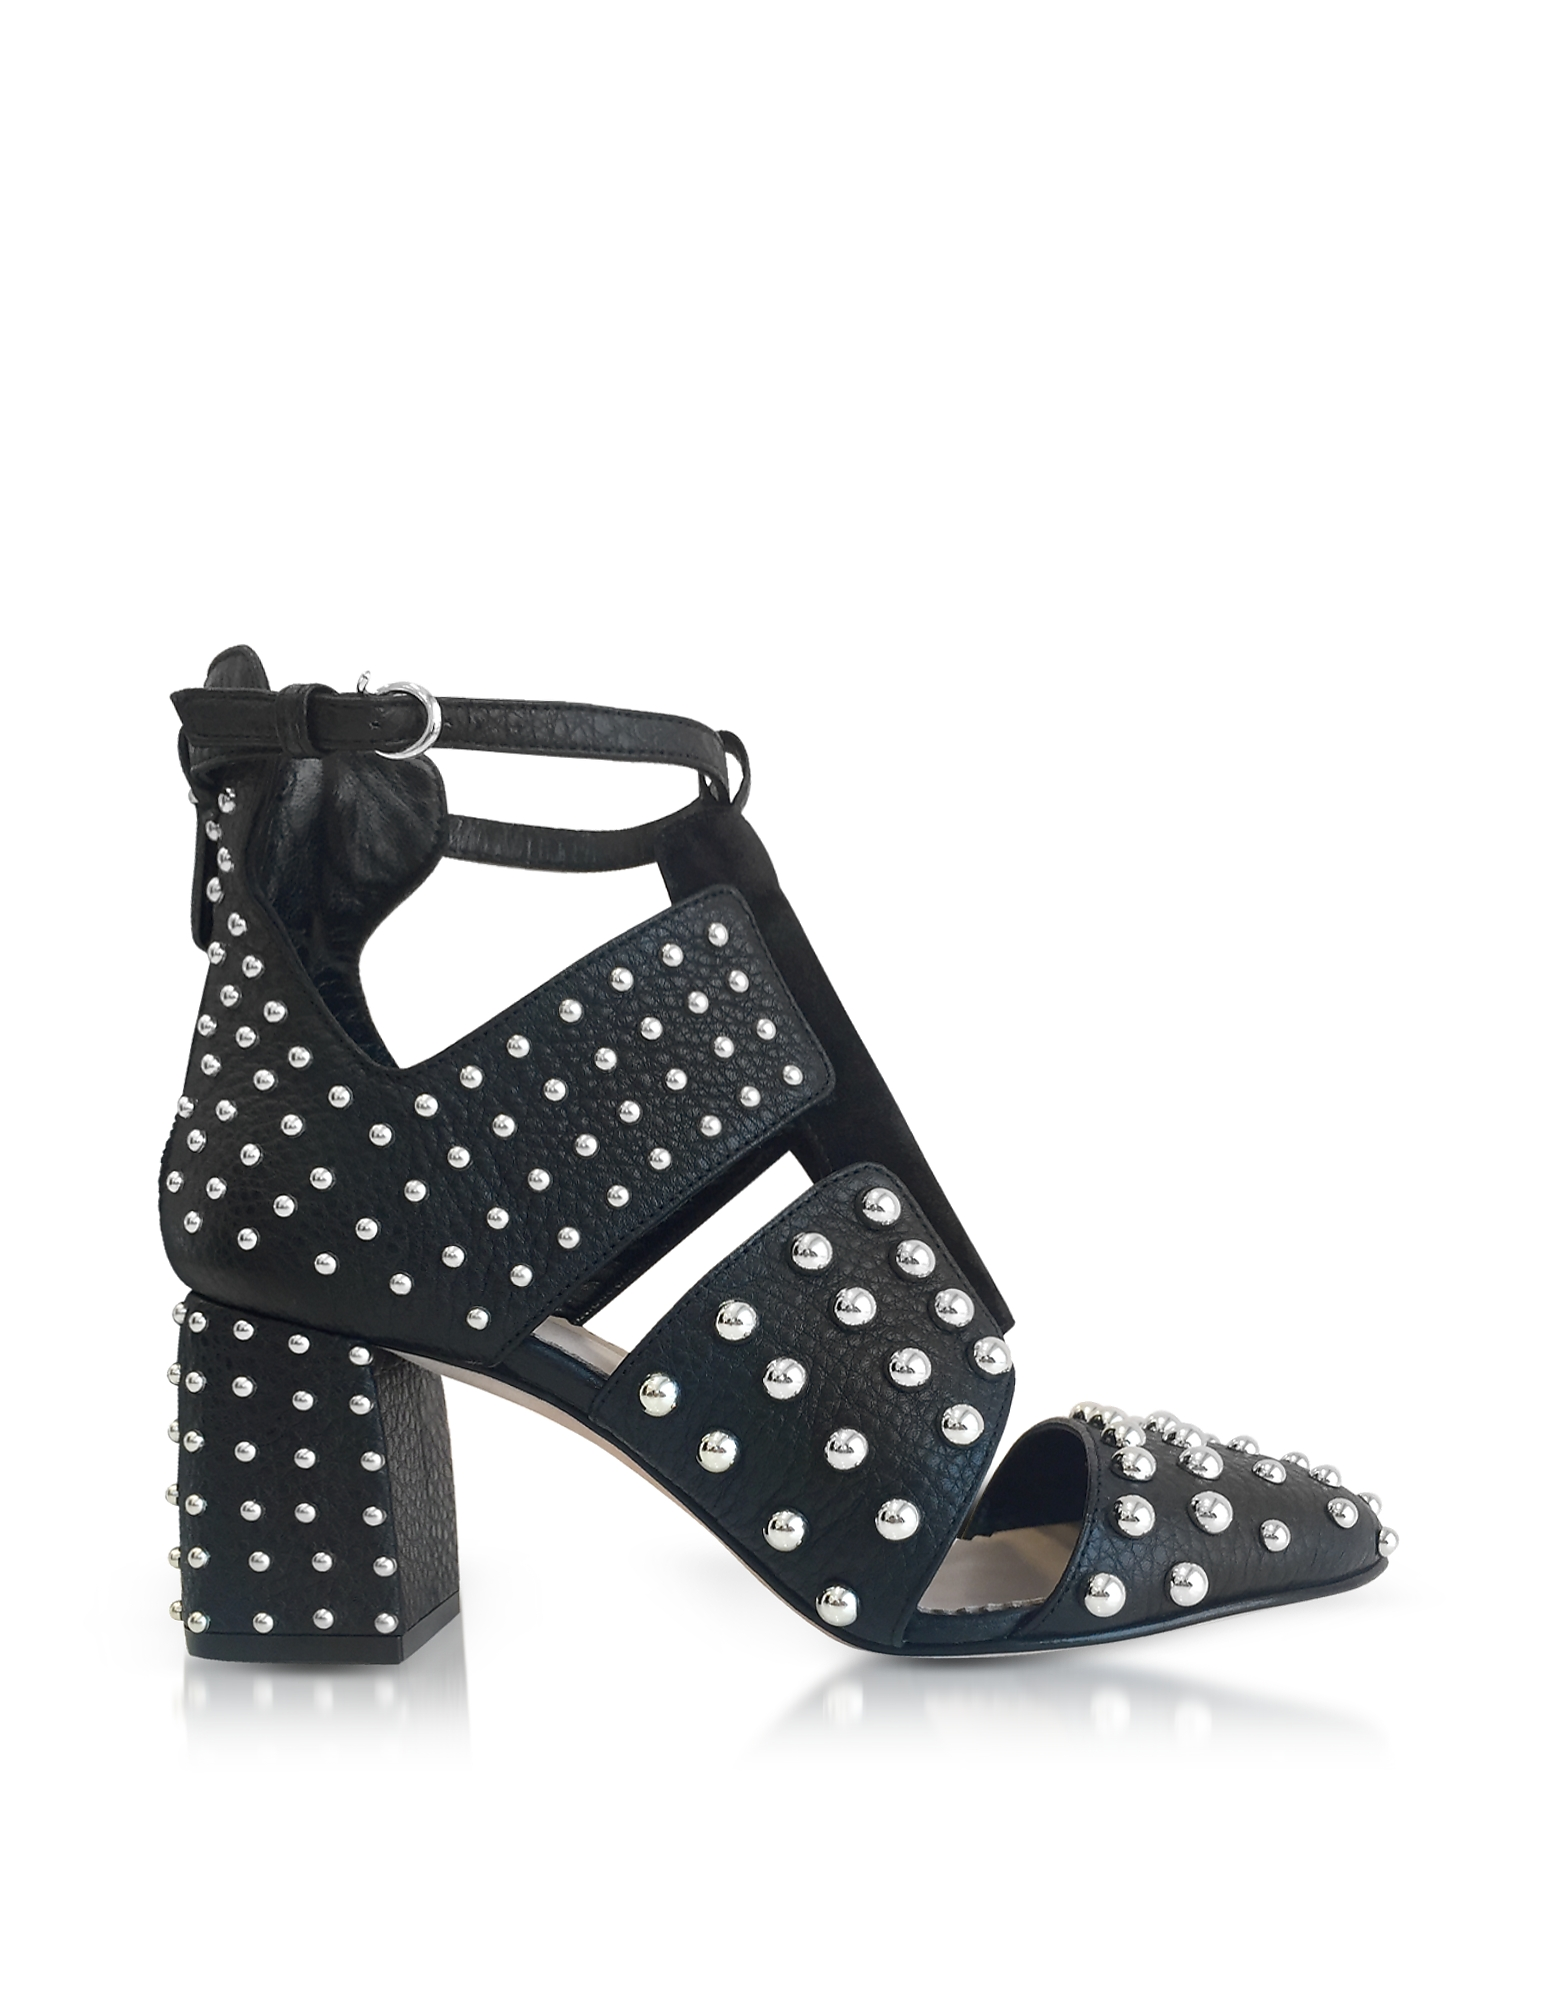 RED Valentino Designer Shoes, Black Leather Studded Boots